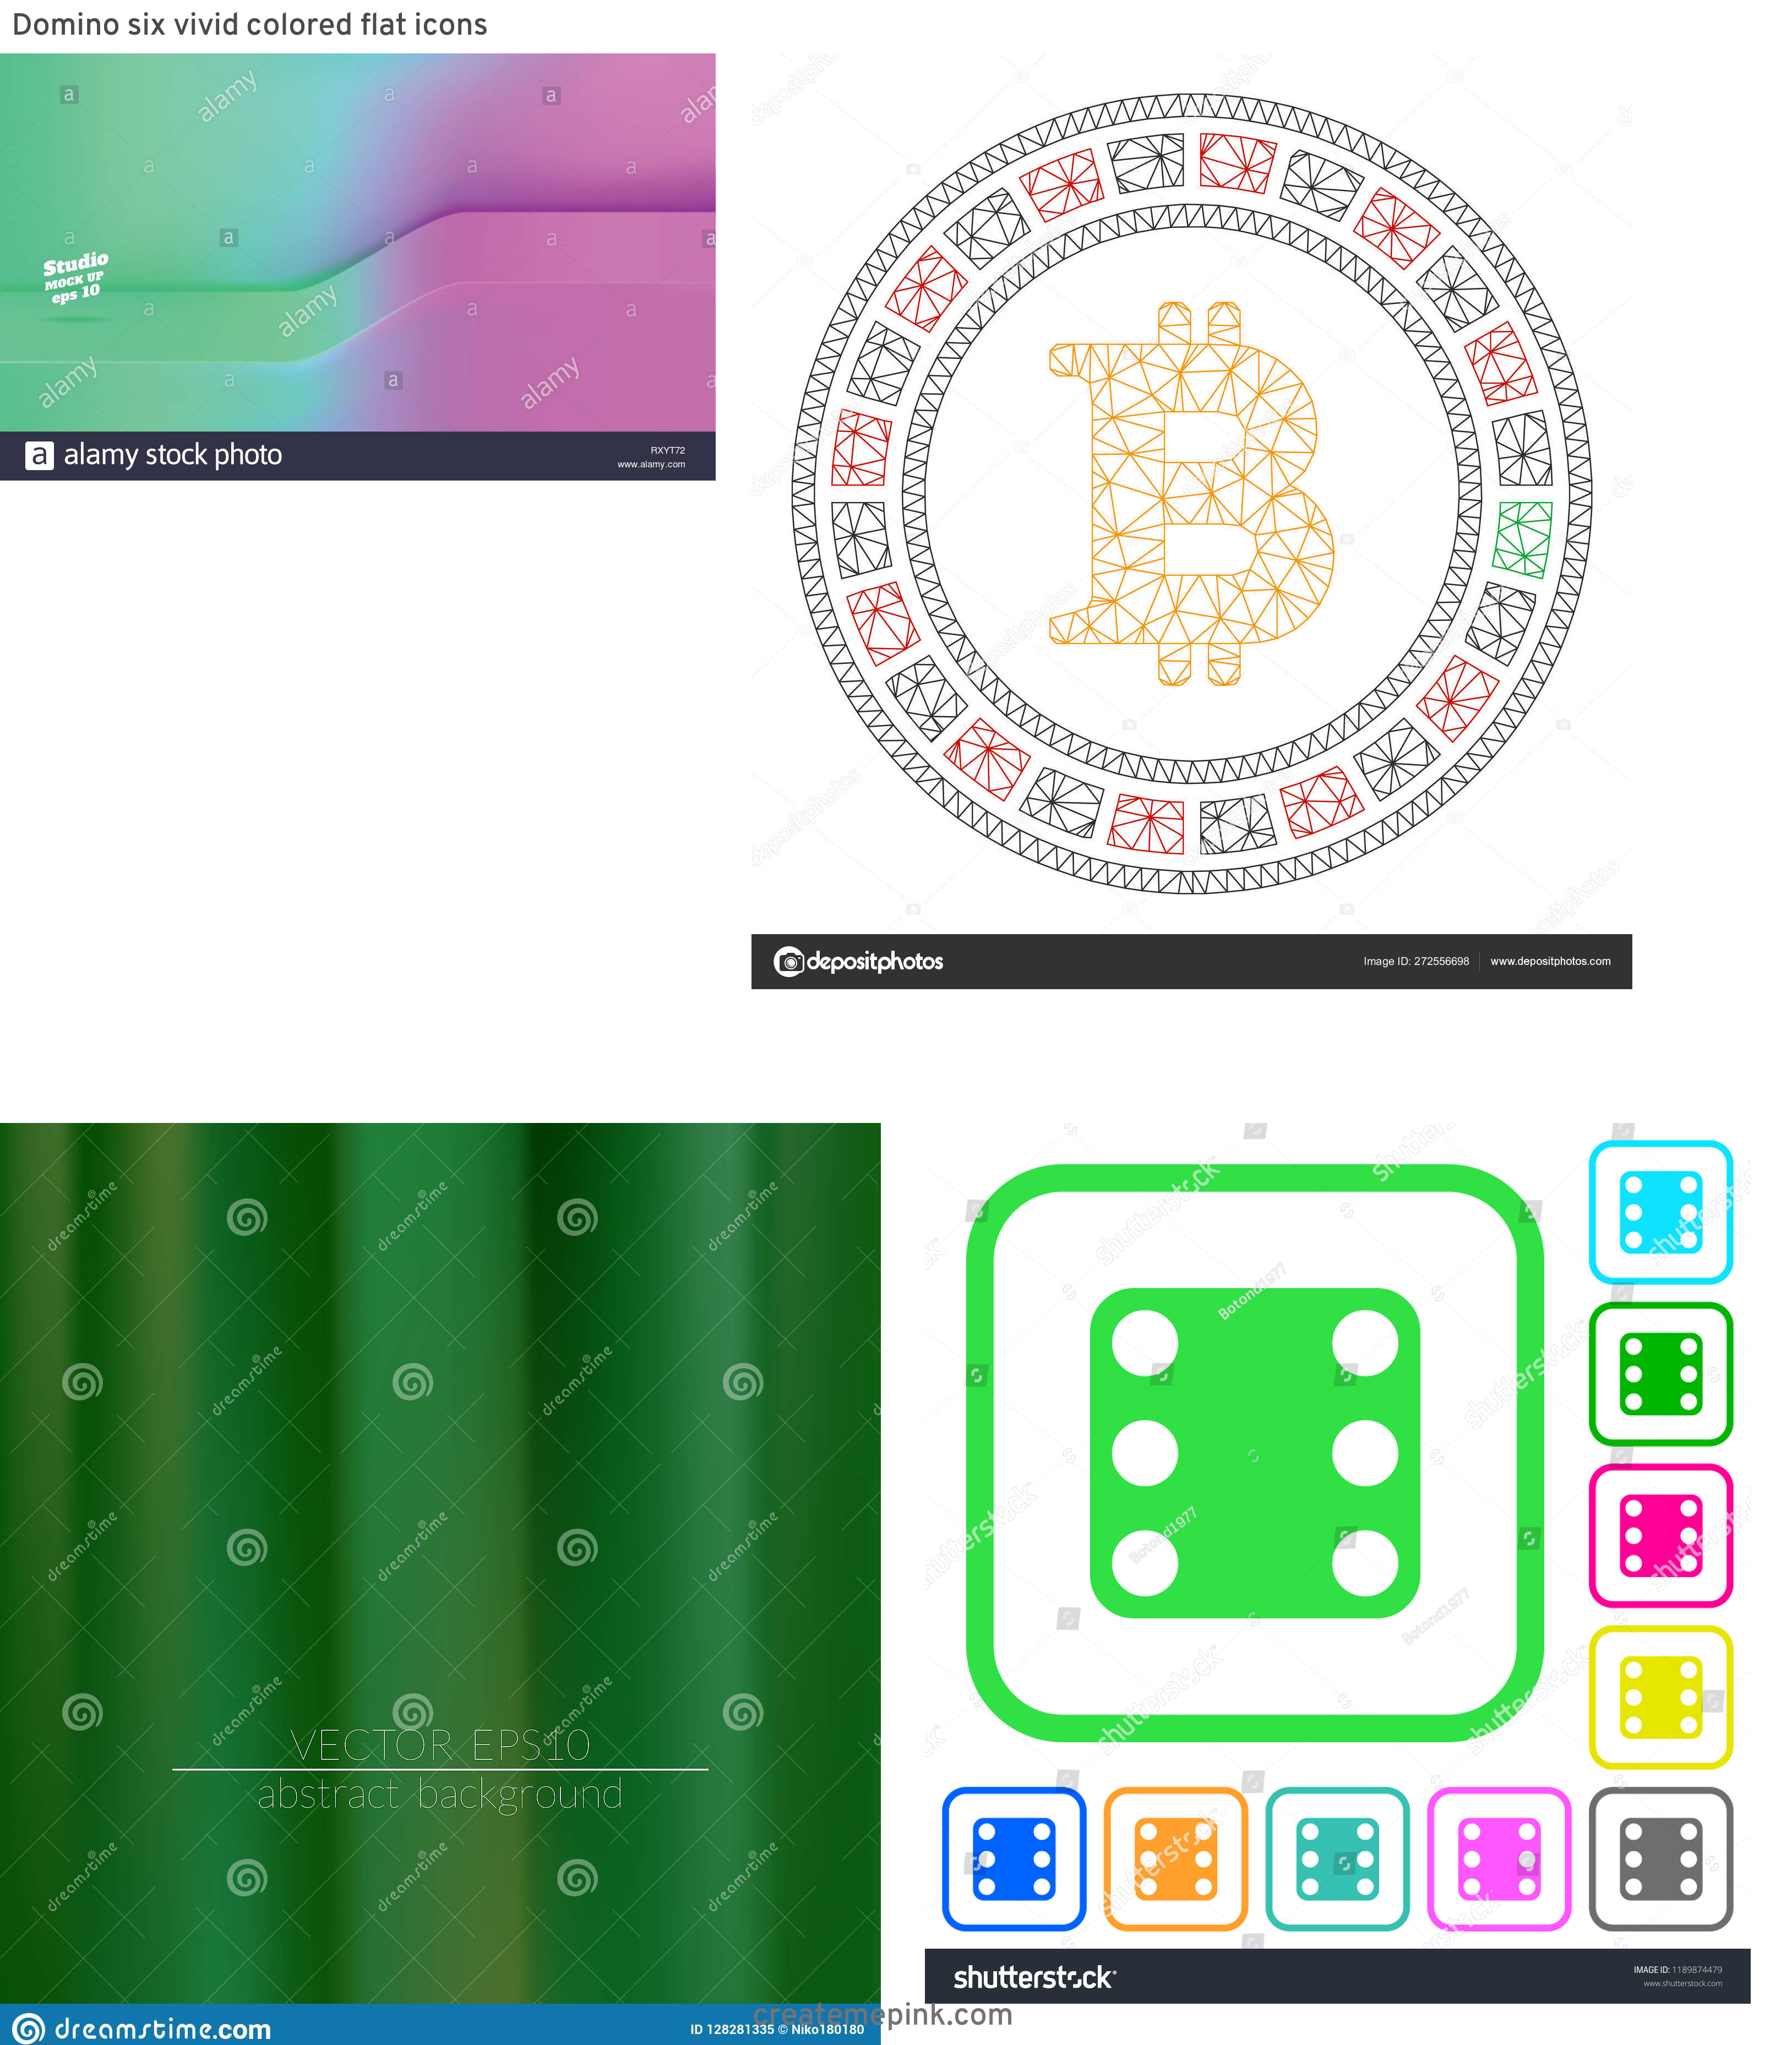 Casino Backgrounds Stock Vector Vivid: Domino Six Vivid Colored Flat Icons